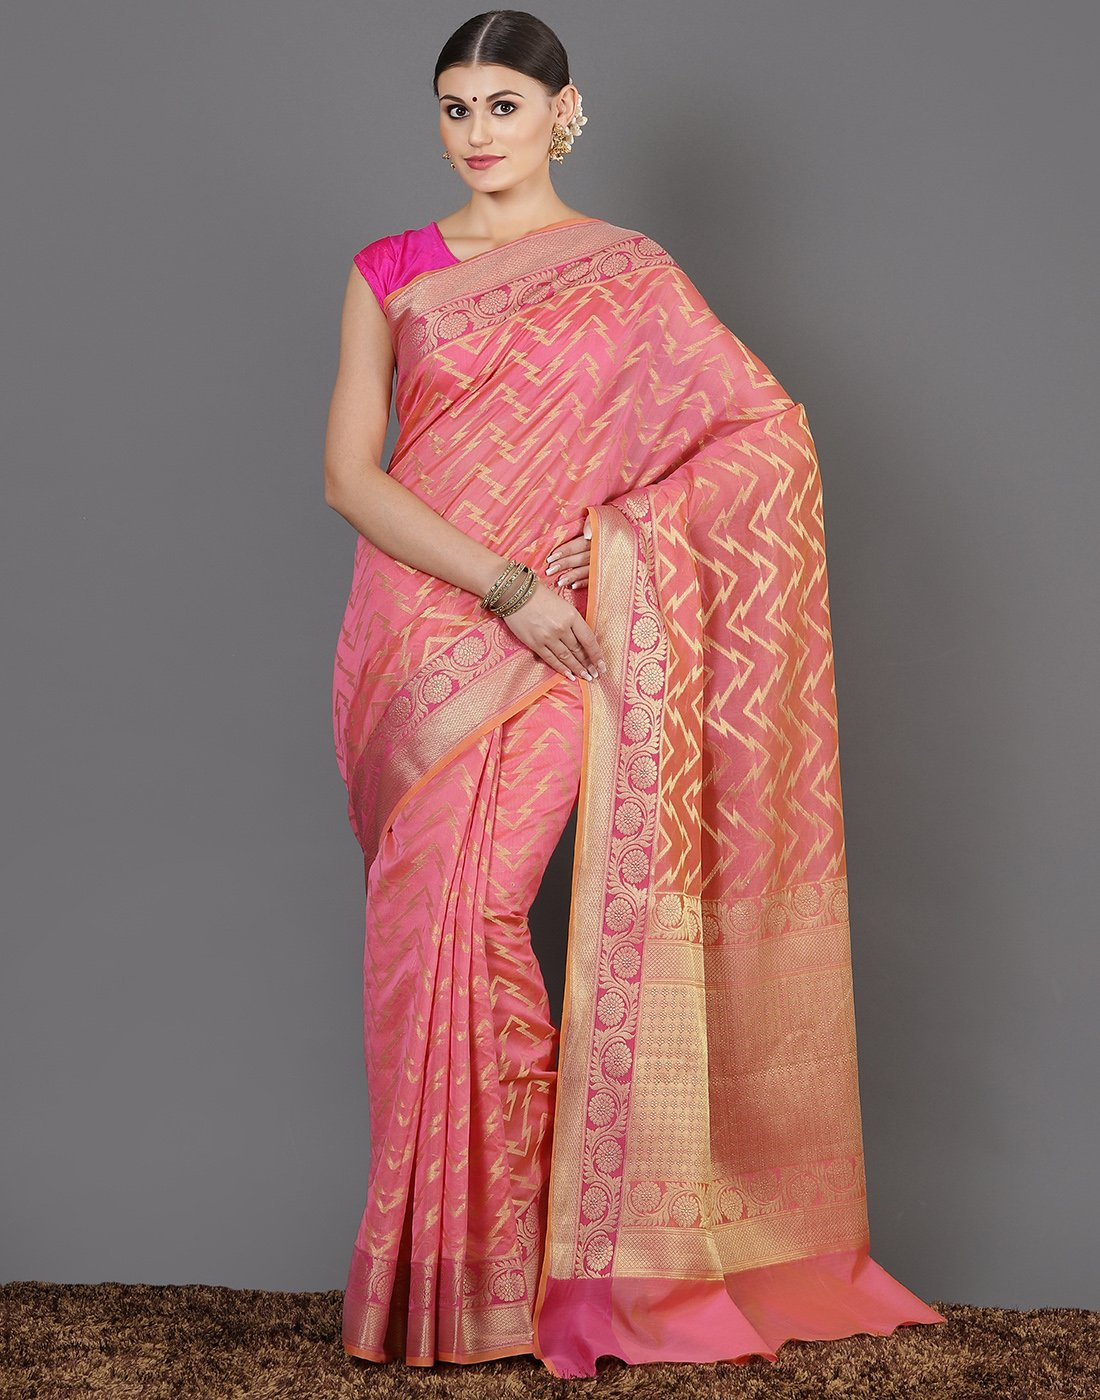 Meena Bazaar: Woven saree with zaari